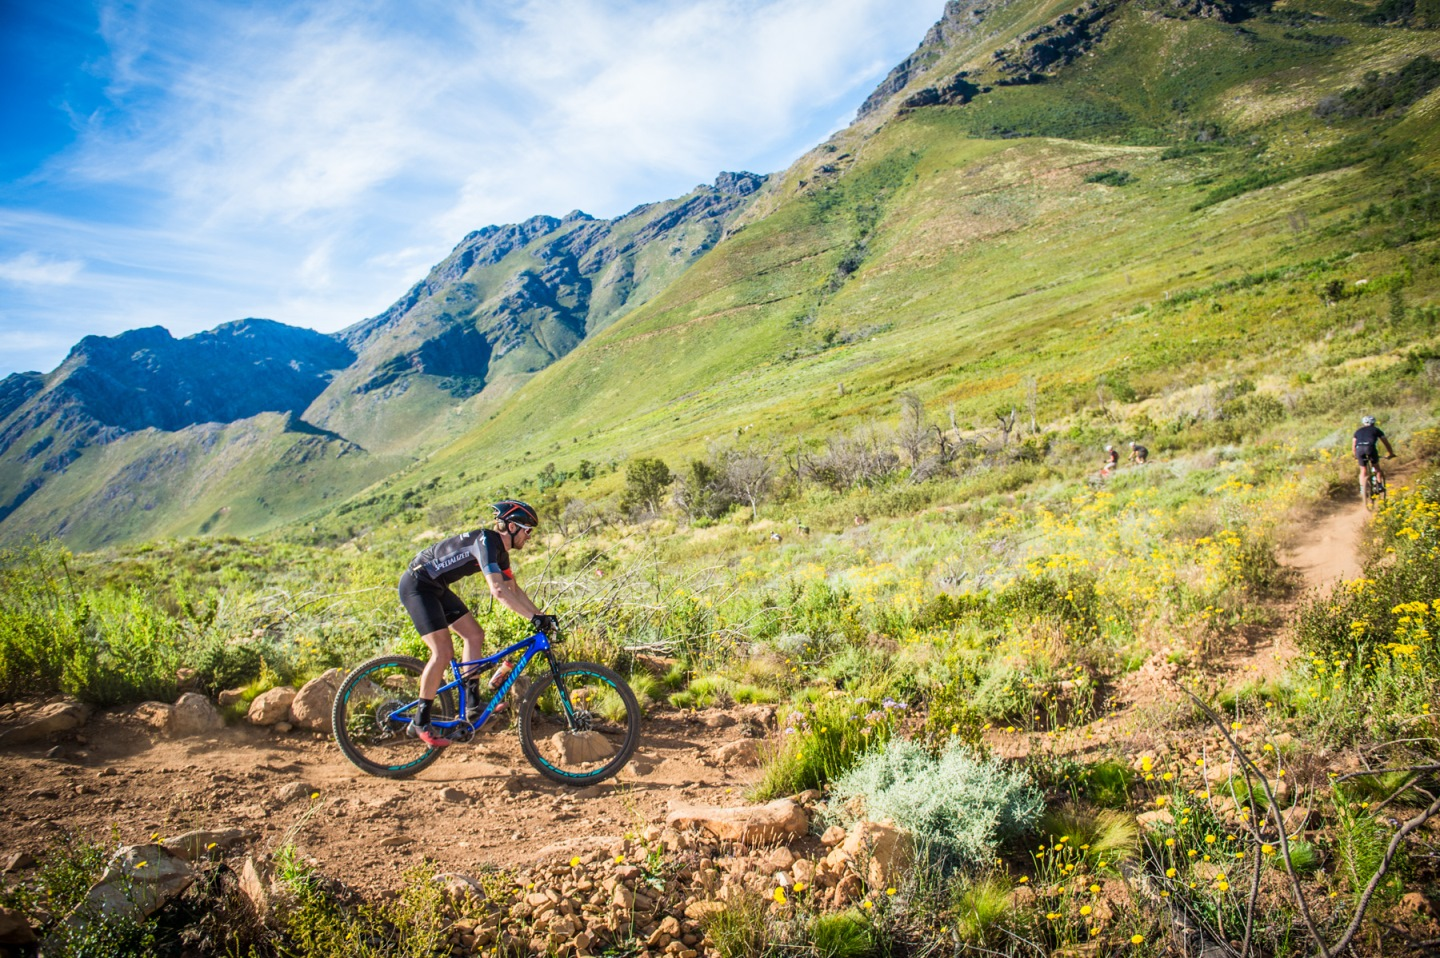 Rekindle your love for mountain biking at the Origin Of Trails MTB Experience